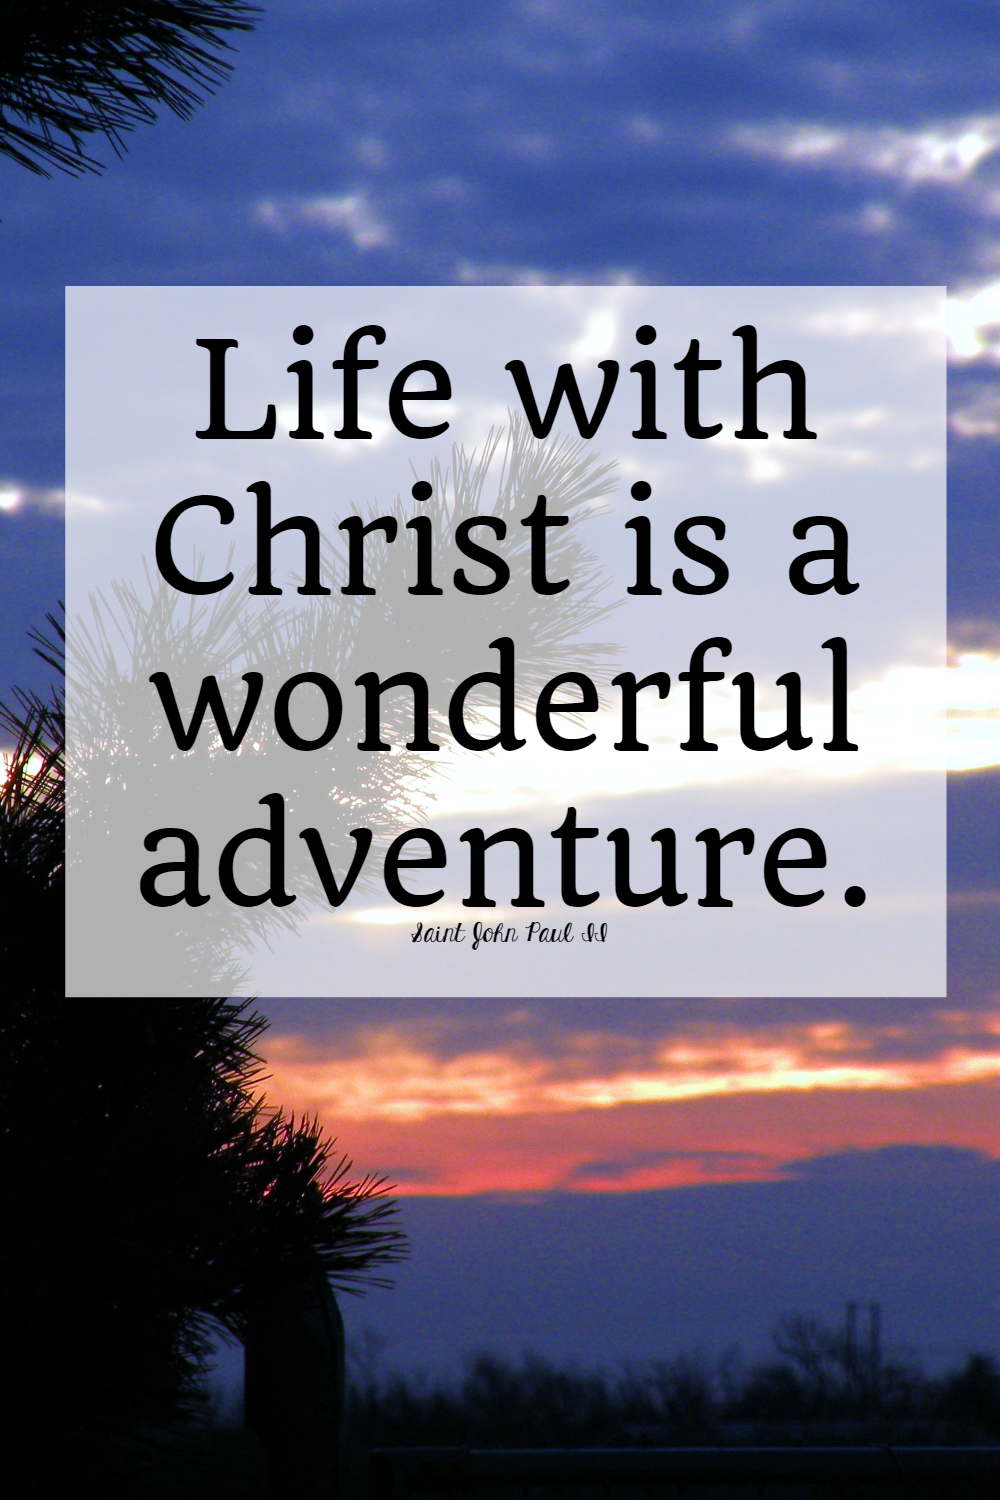 saints quotes a wonderful christian adventure • the littlest way